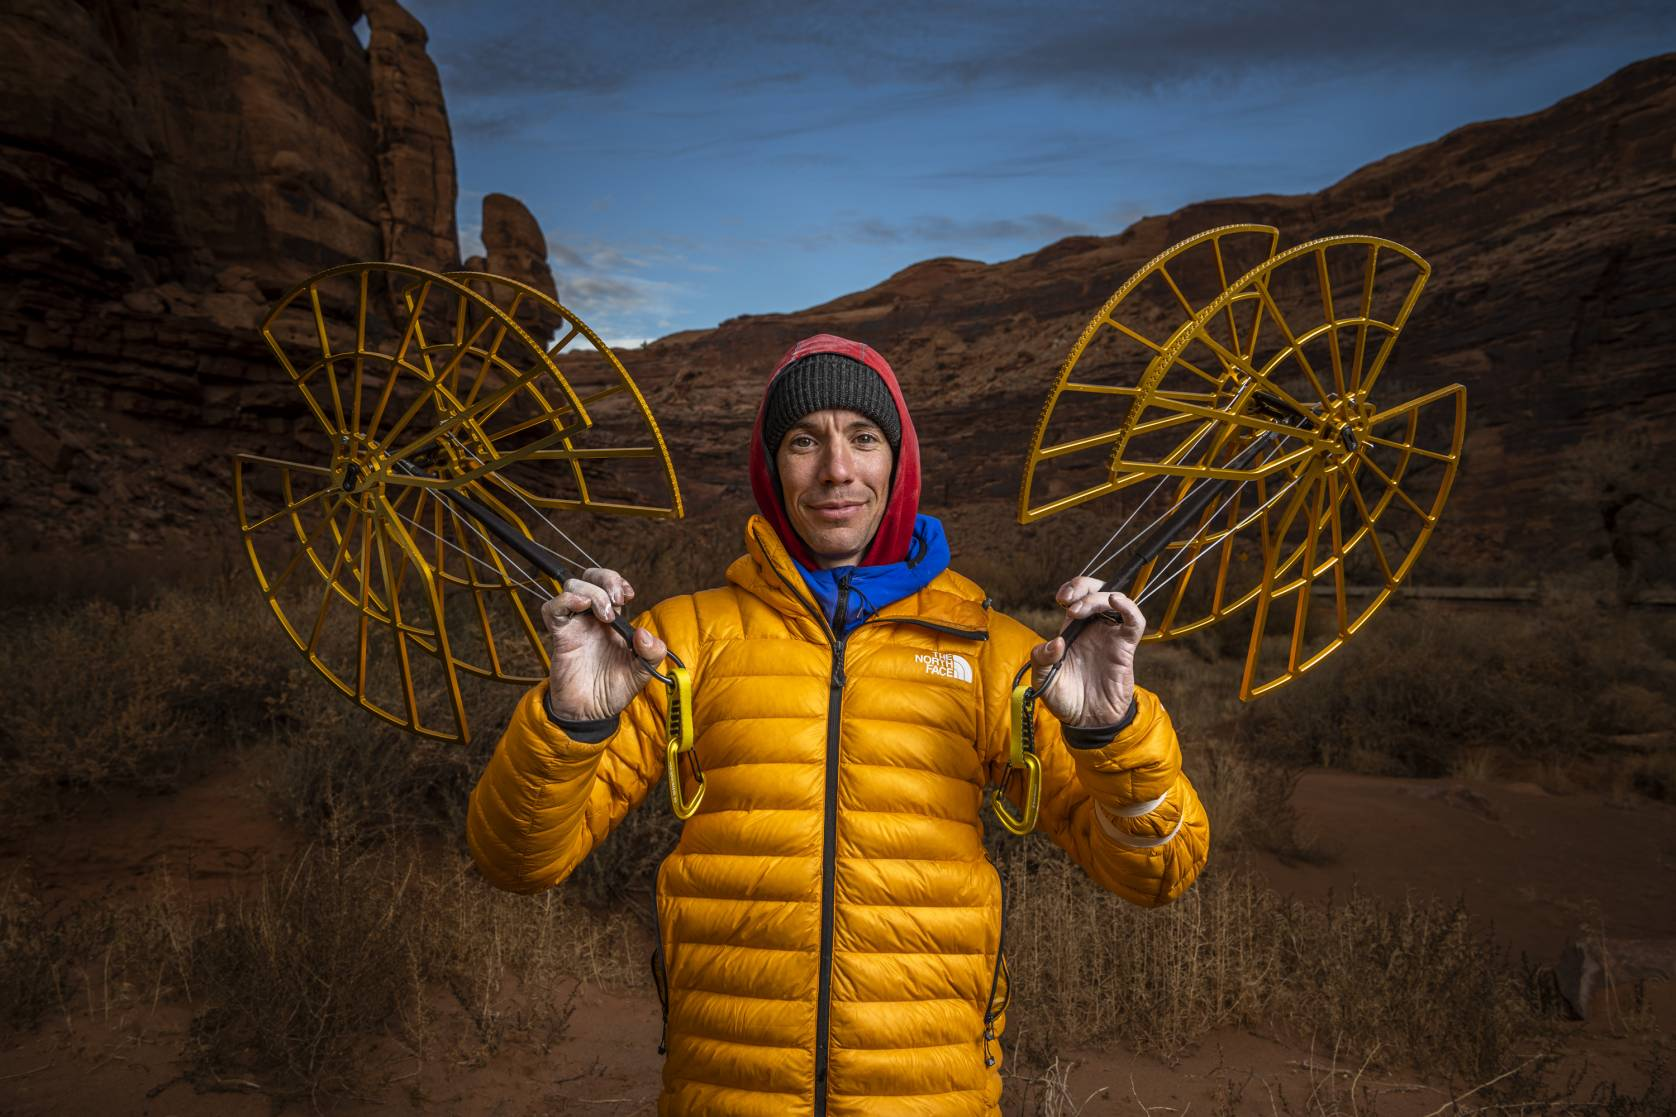 Alex Honnold in a yellow puffy and beanie holding giant 2-foot cams